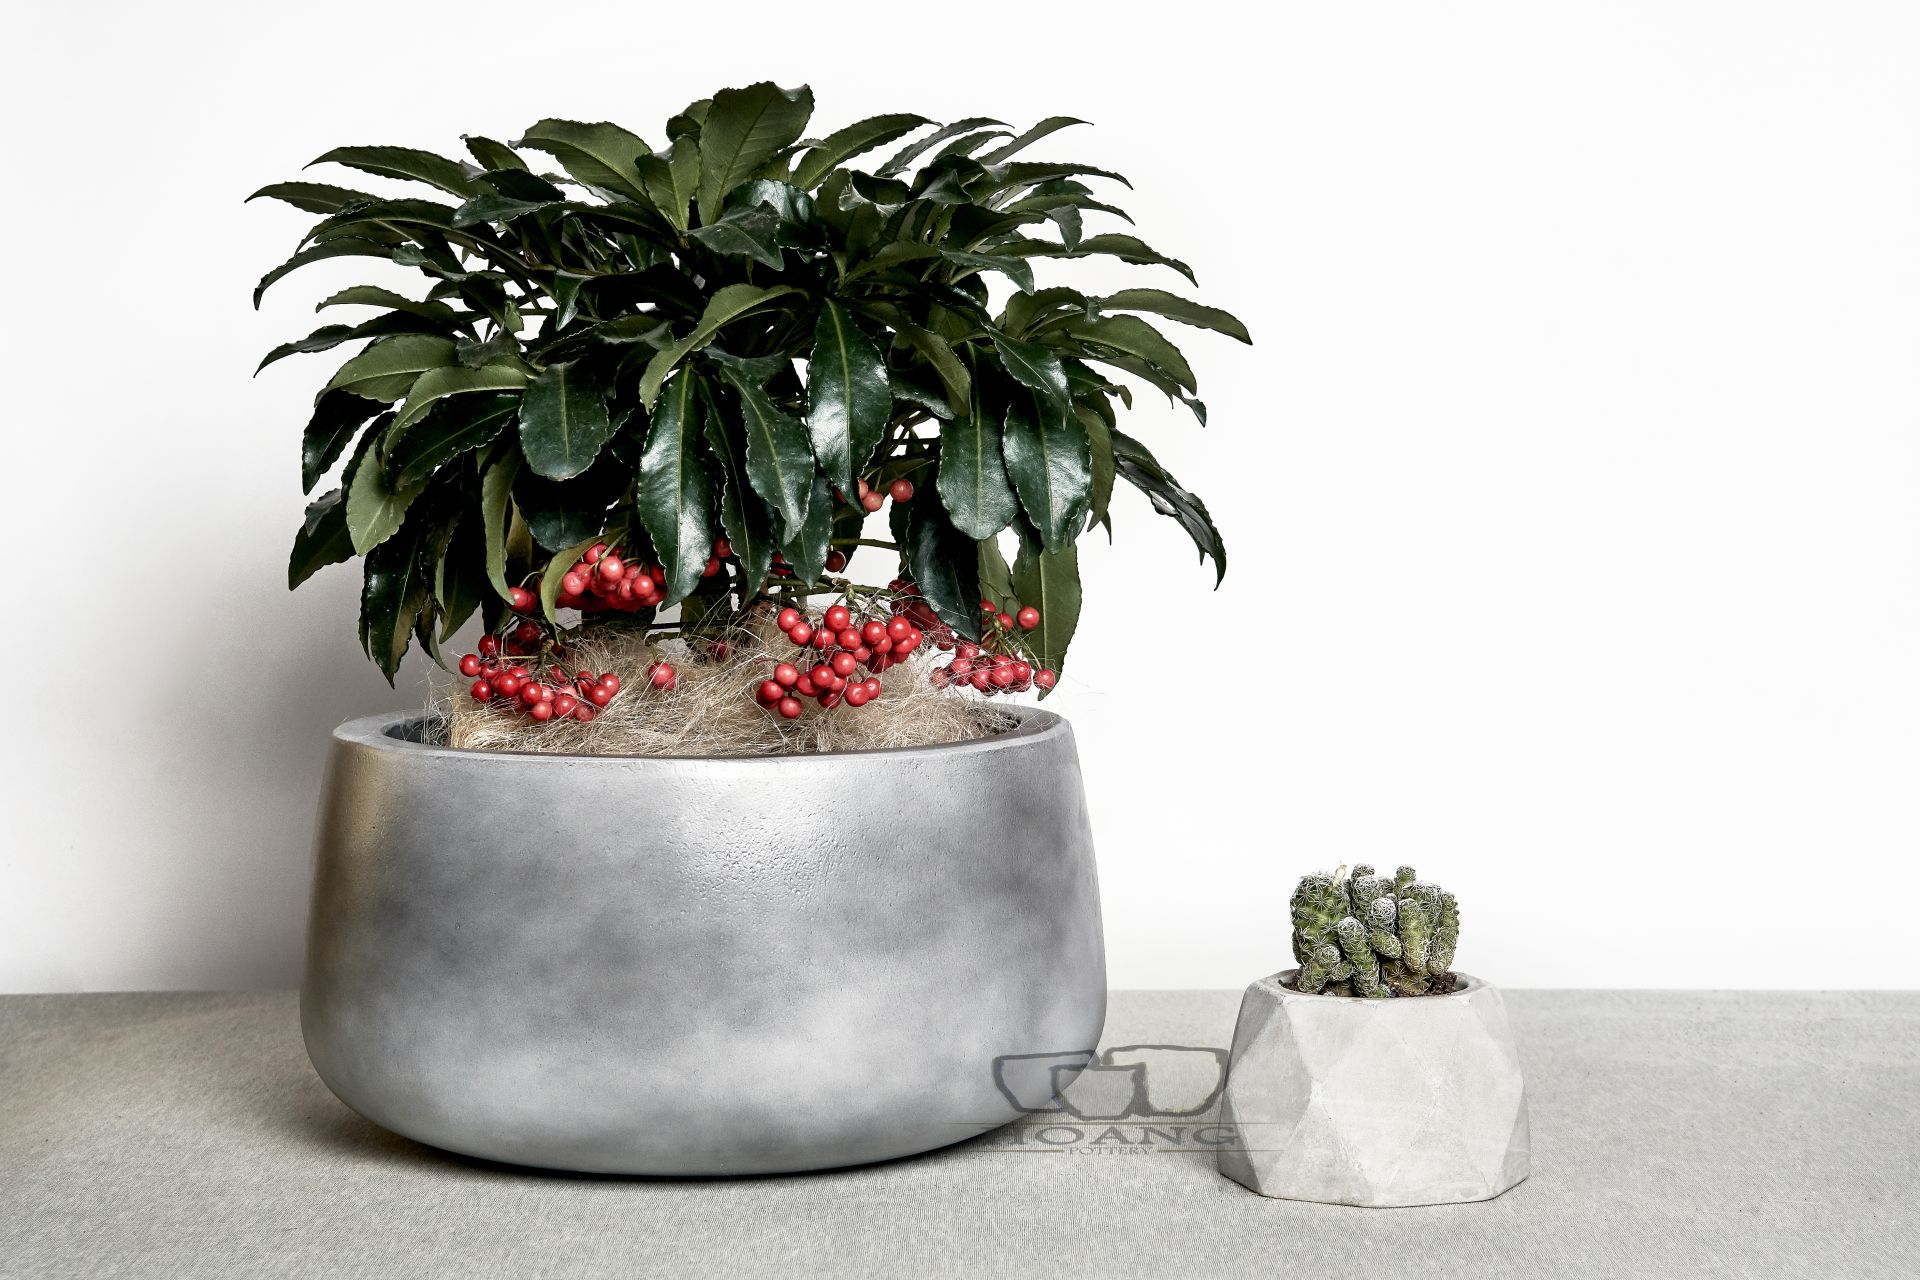 Cement pots are having a moment in interior and exterior design.